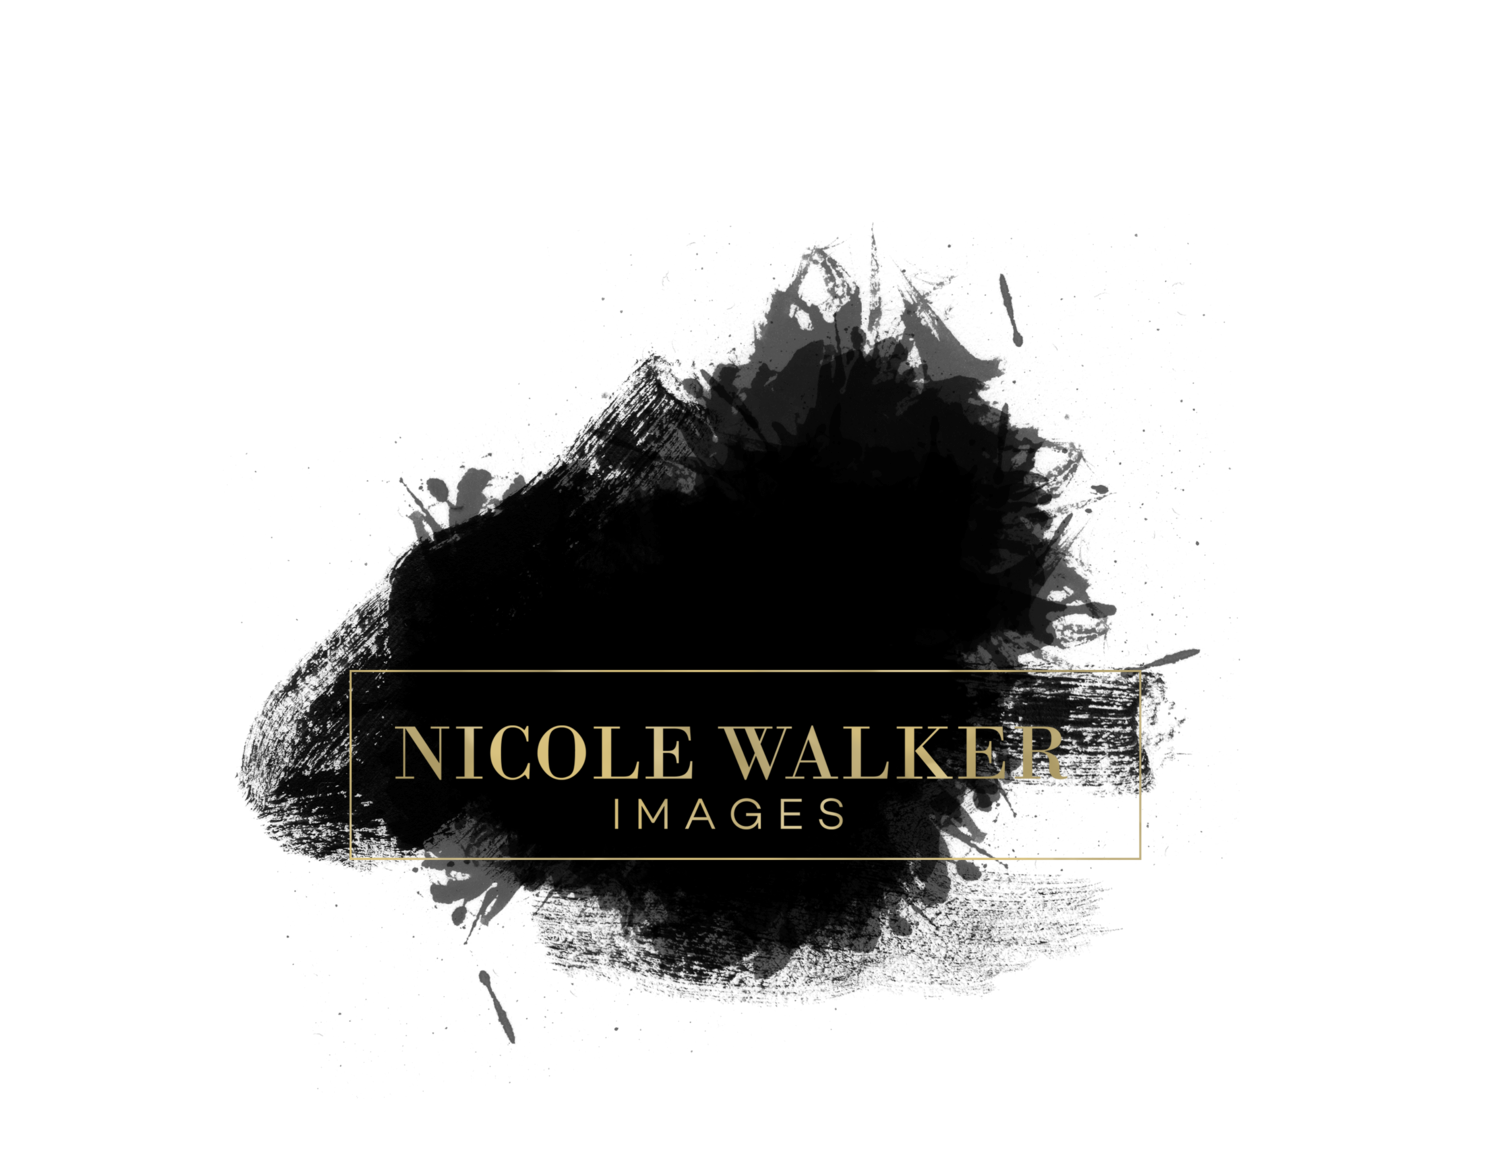 Nicole Walker Images